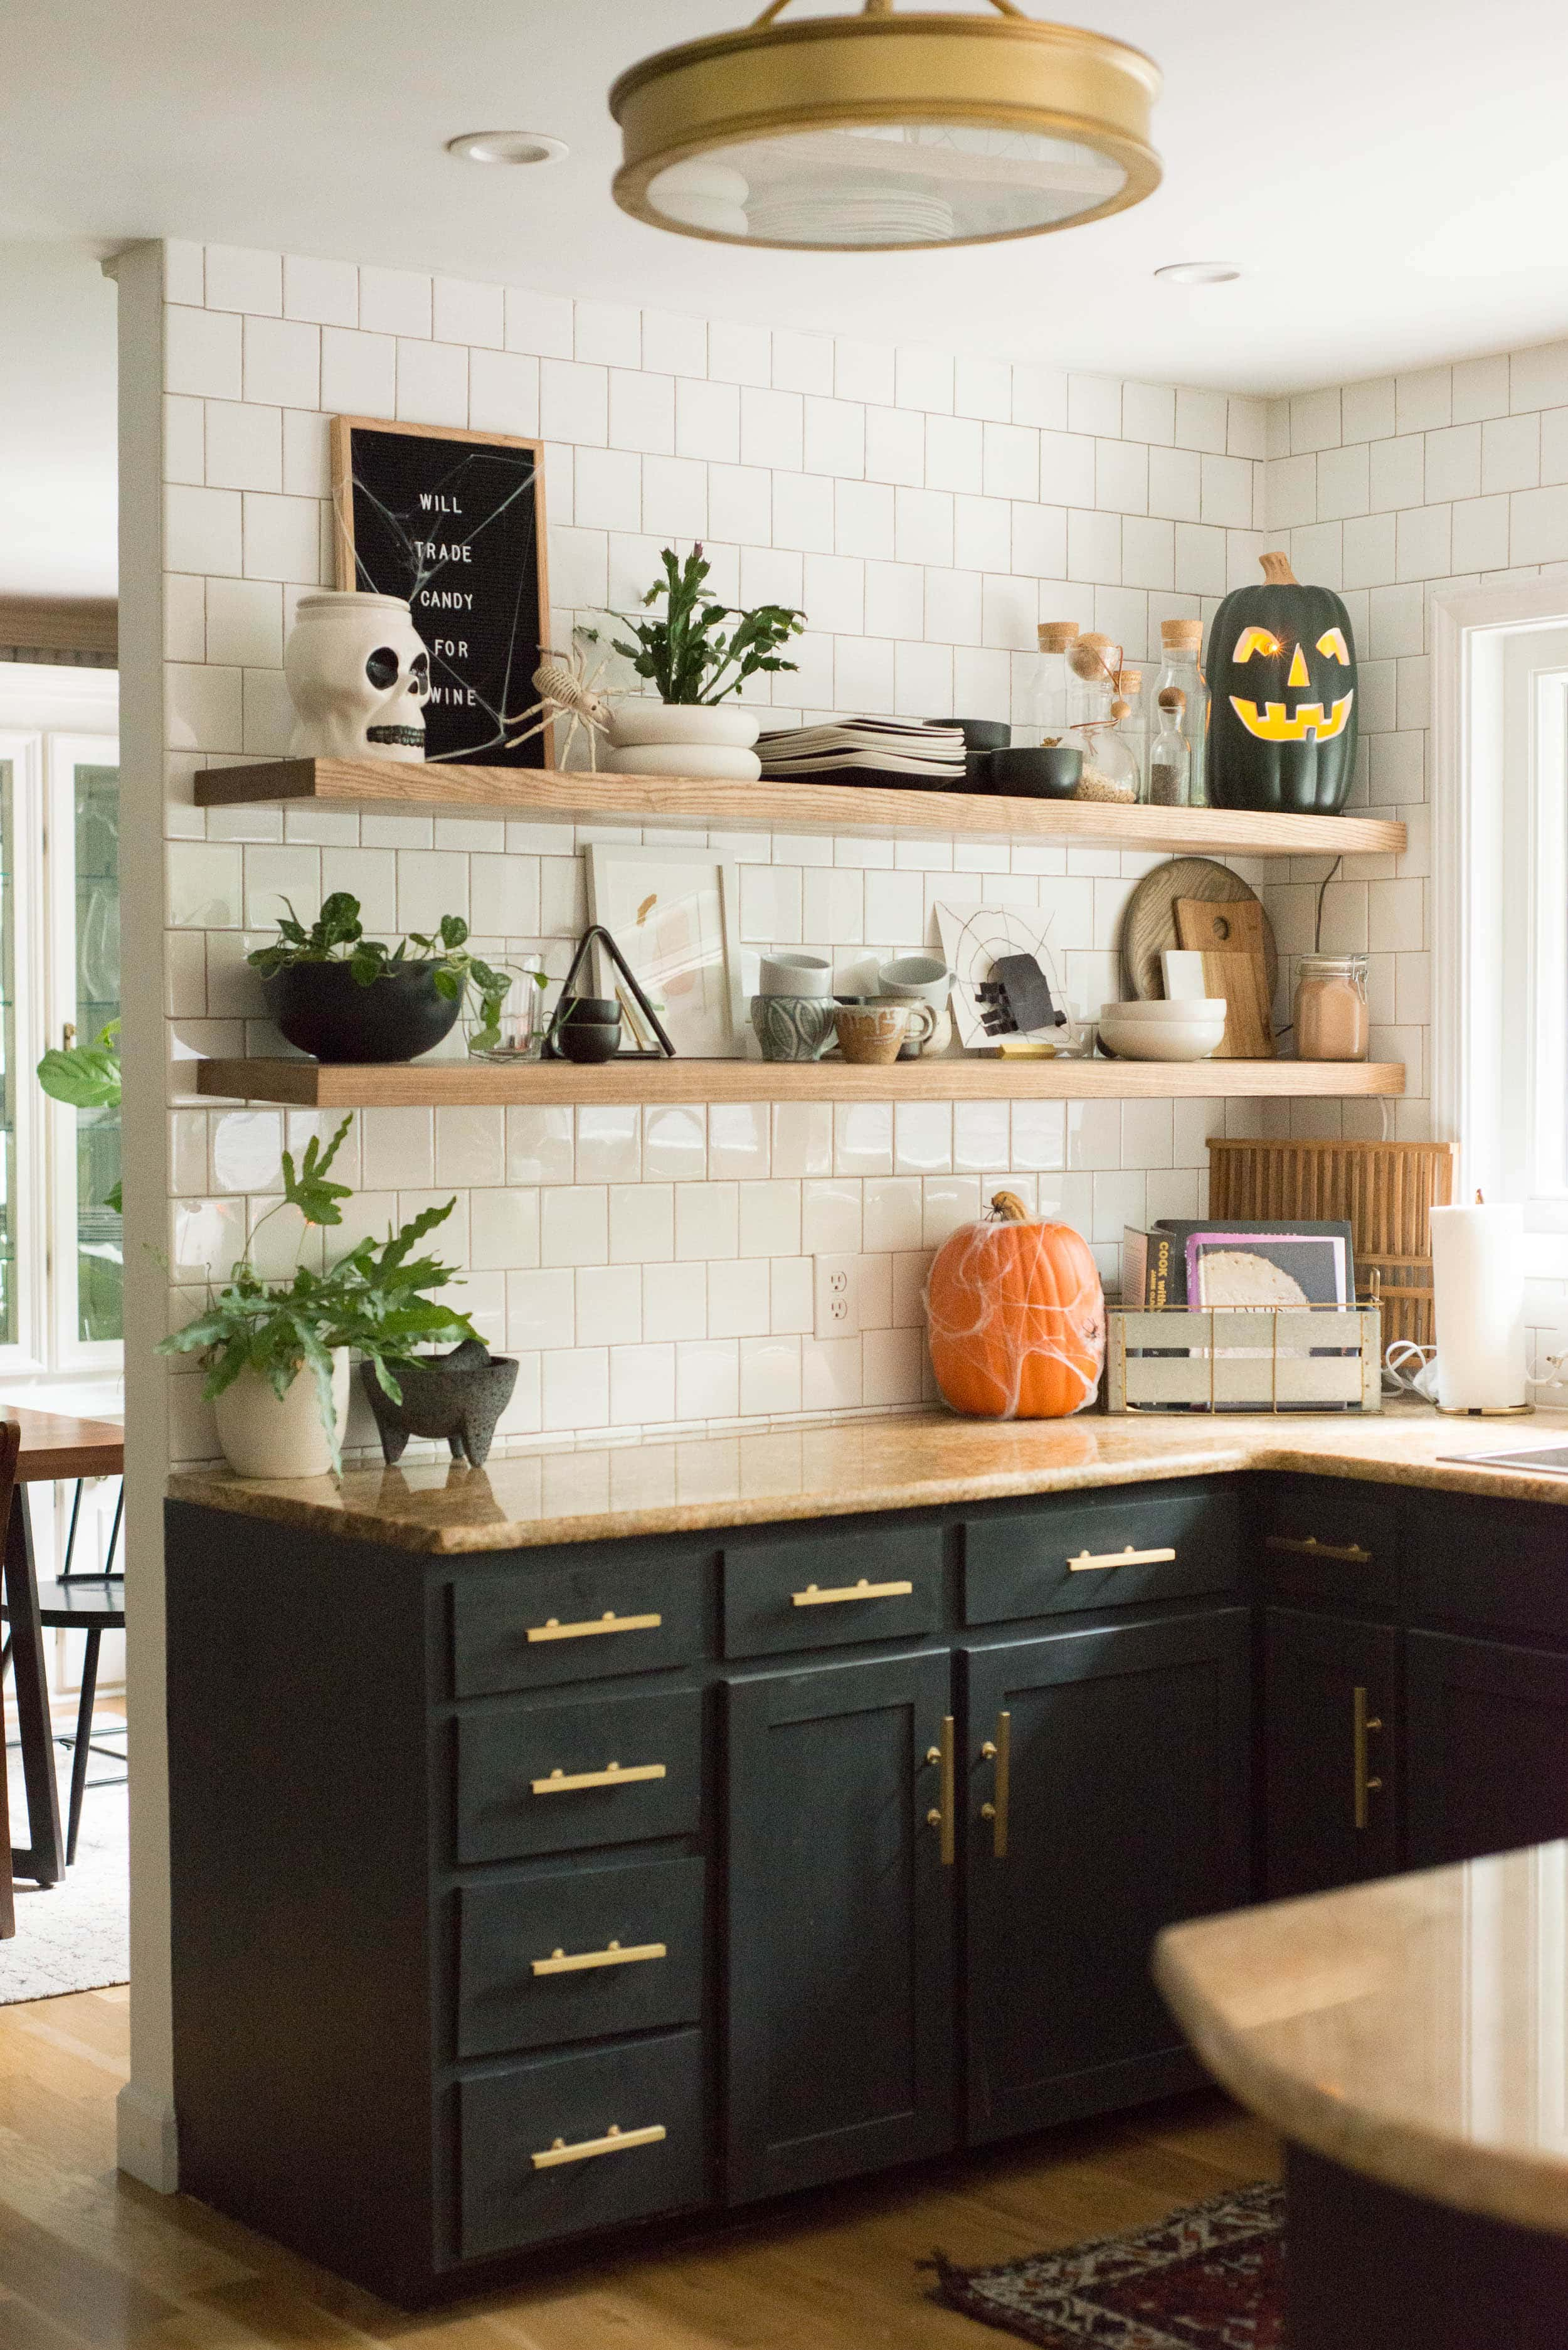 If you aren't a seasonal decorator but do want to decorate a tad for Halloween, then come on over. I'm sharing some Halloween Decor Ideas for home today. #halloweendecor #halloweendecorating